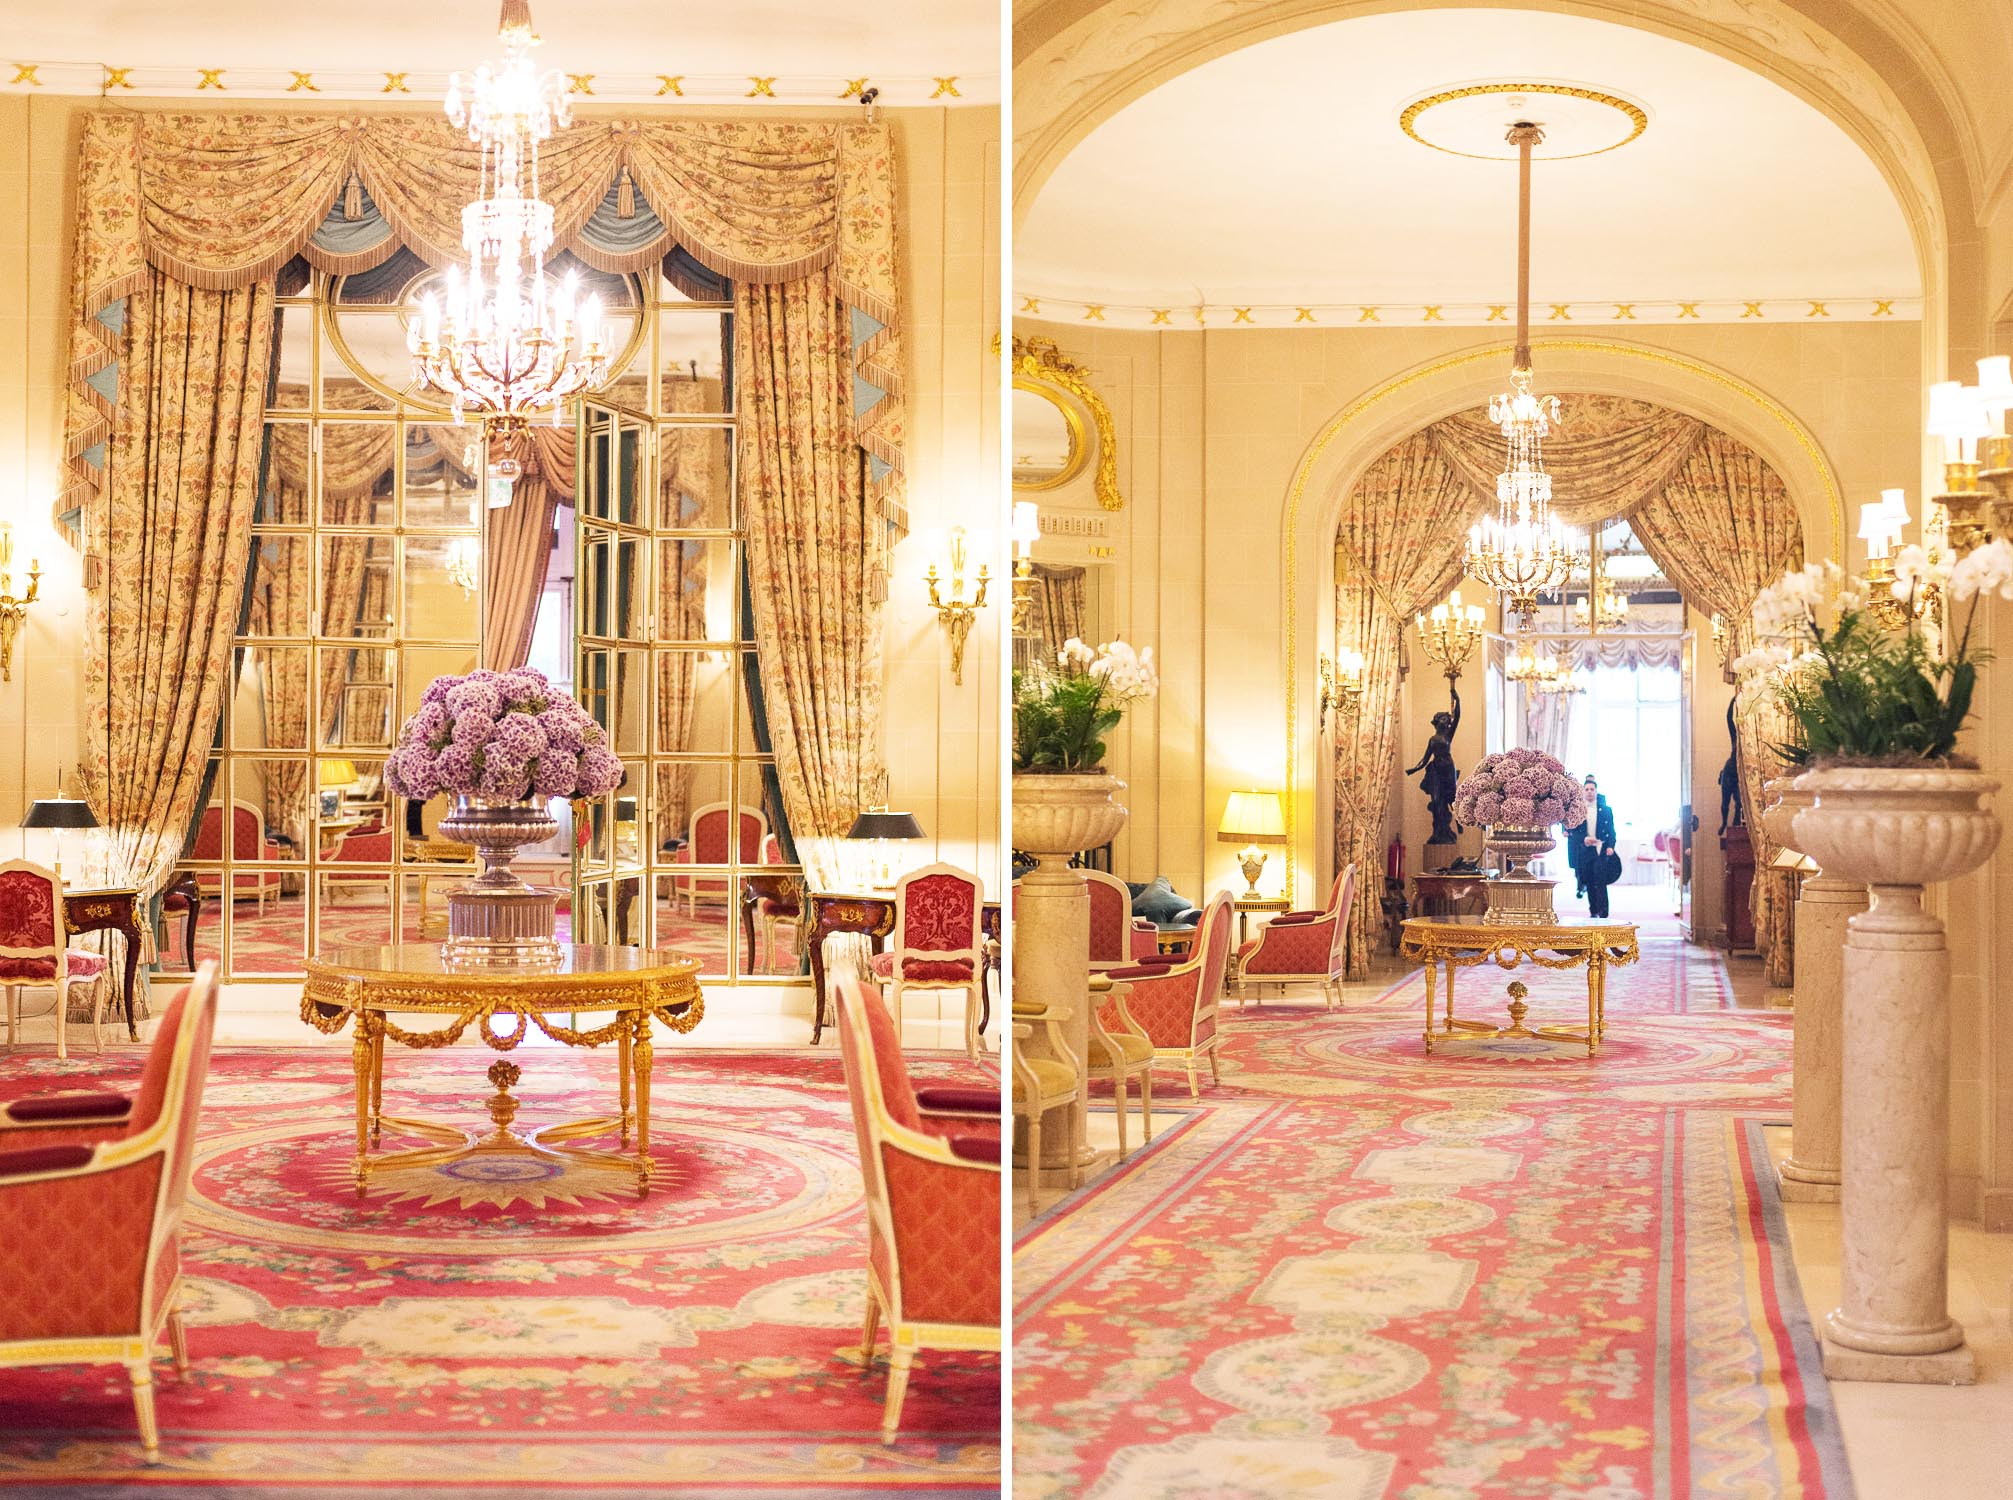 Afternoon-Tea-The-Ritz-London-1 copy